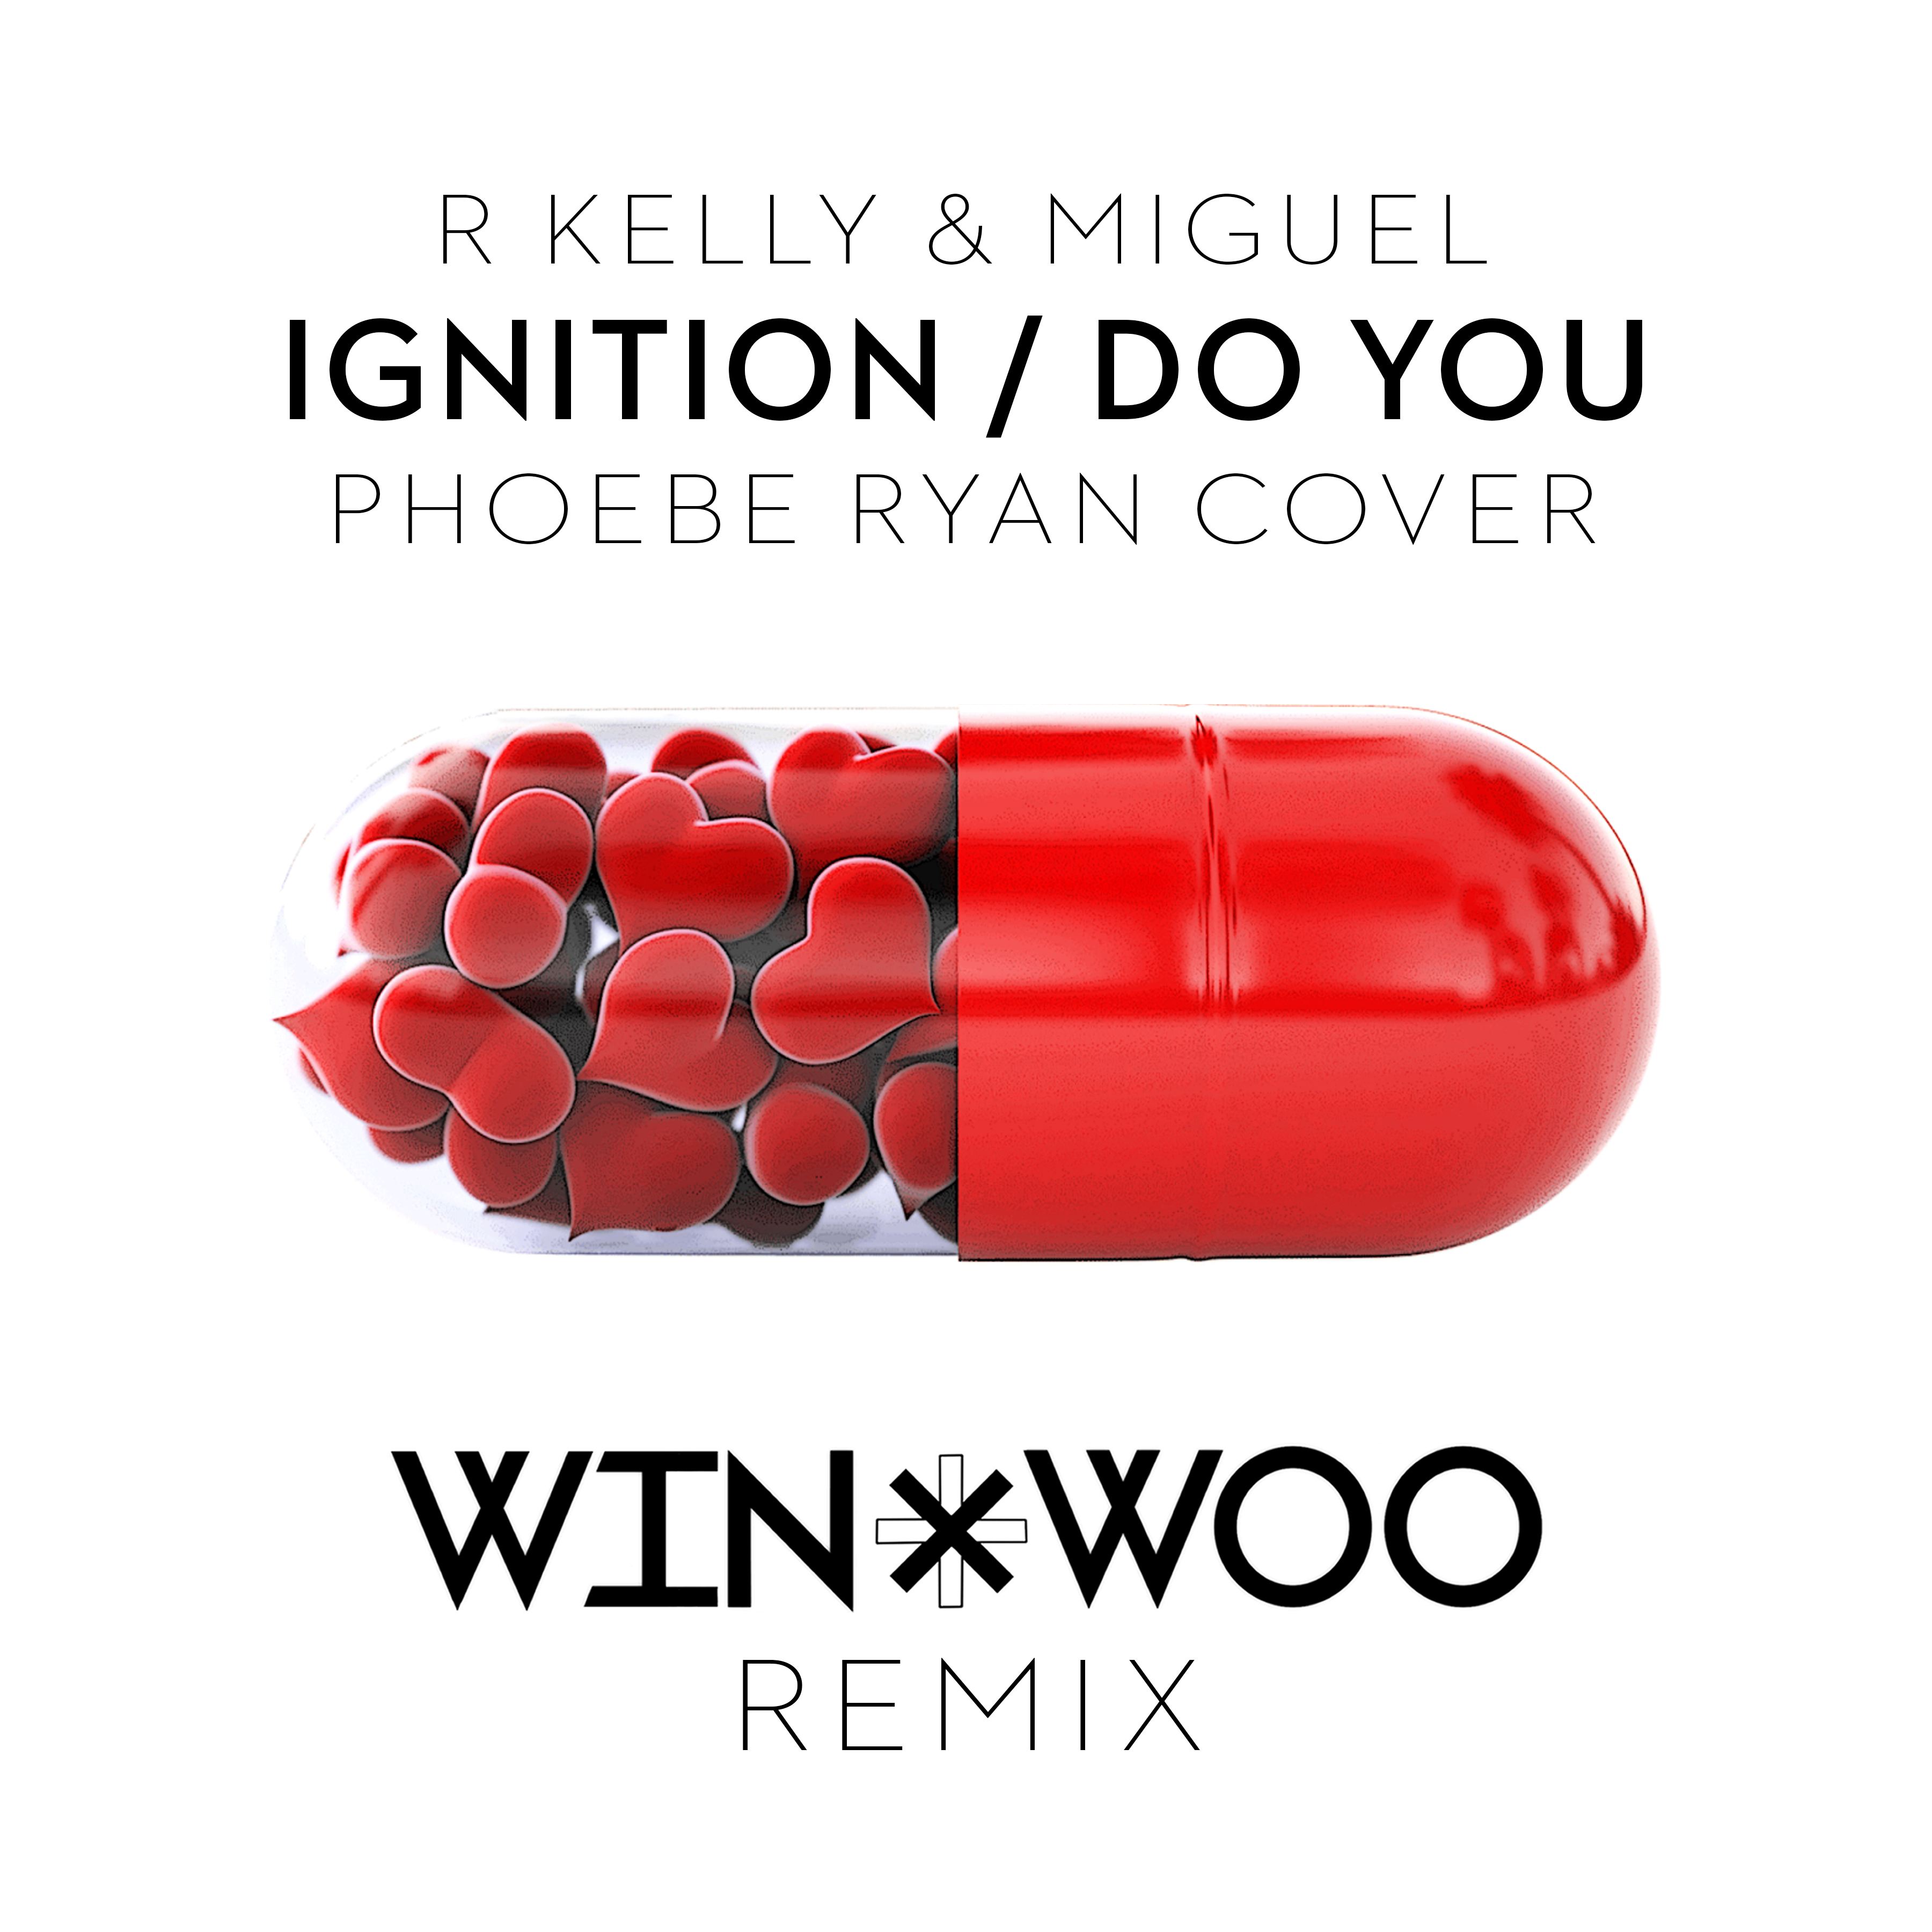 ignition download r kelly